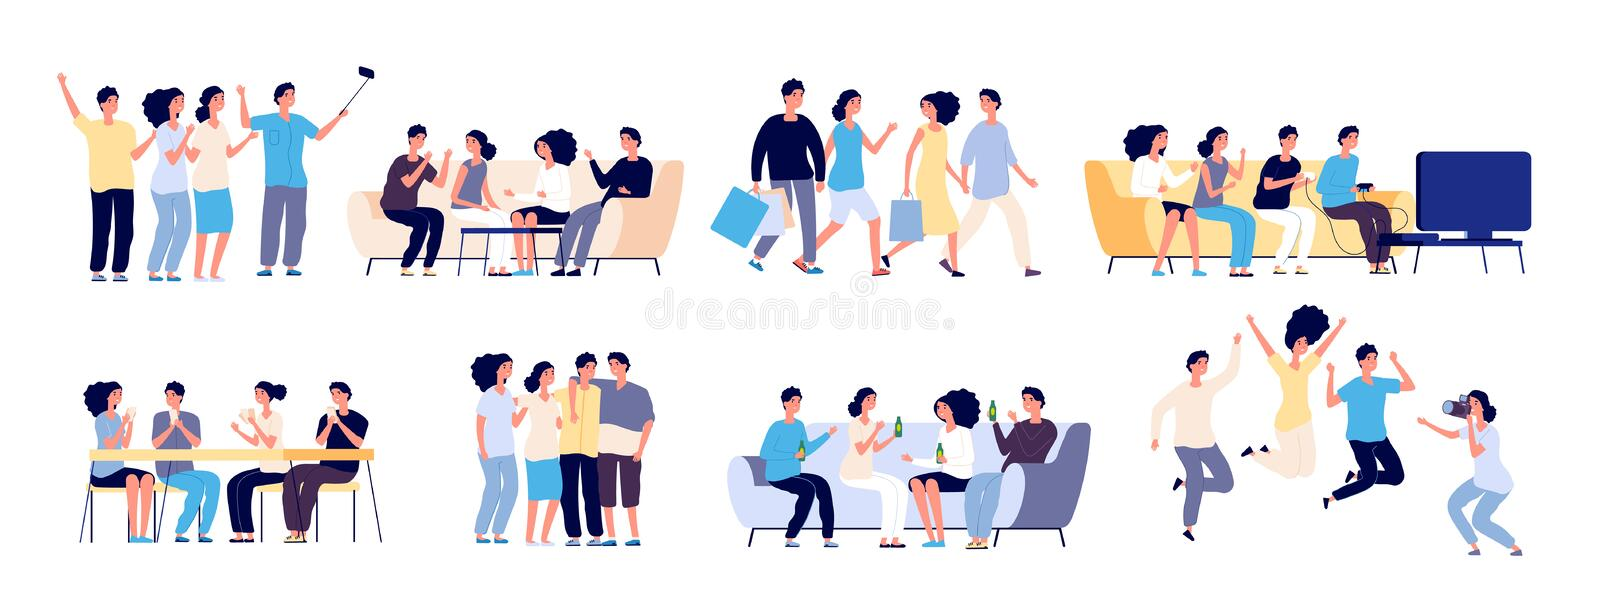 Friends characters. Friendship between people. Young best friends spending time together in conversation cartoon. Vector set isolated on white background stock illustration